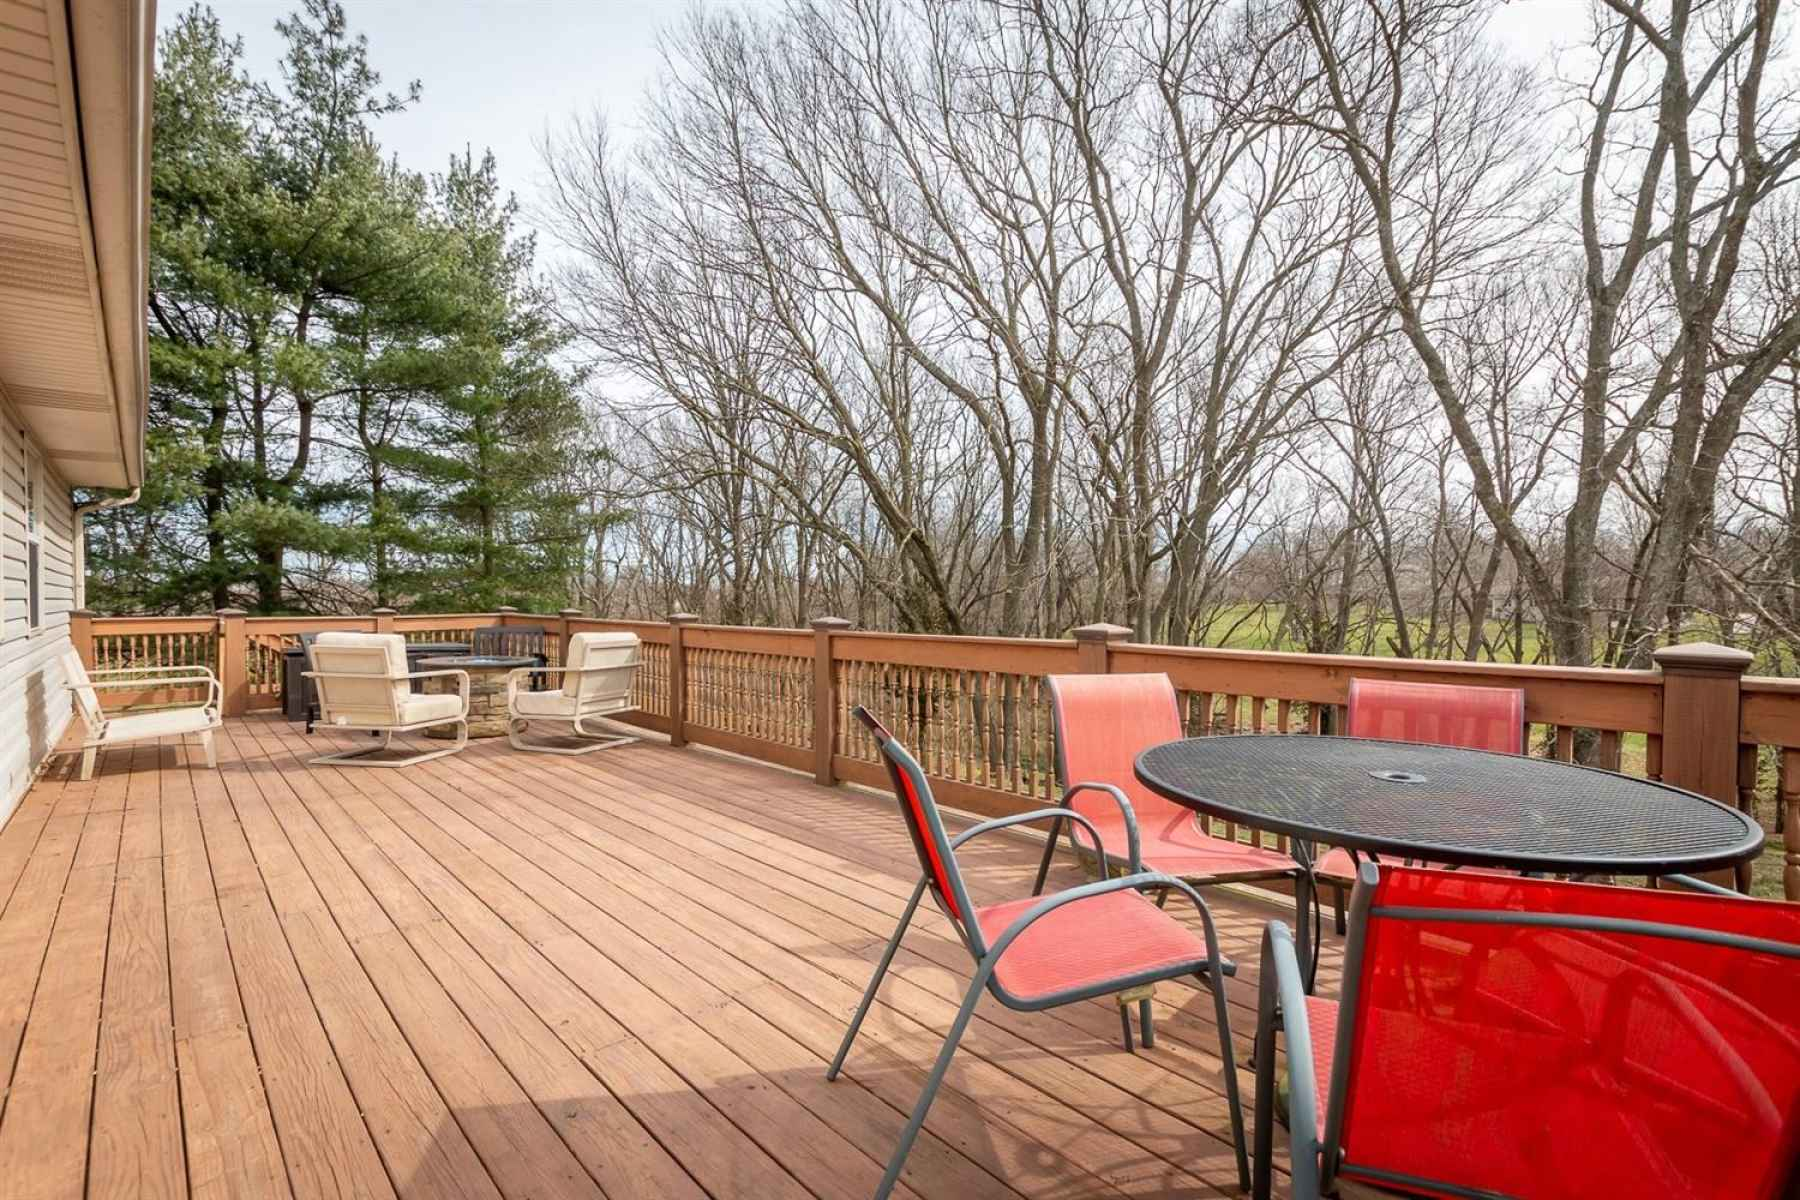 This large deck is just perfect for the upcoming spring days and nights!  And with all the trees on the lot, you almost feel like you're in a tree house!